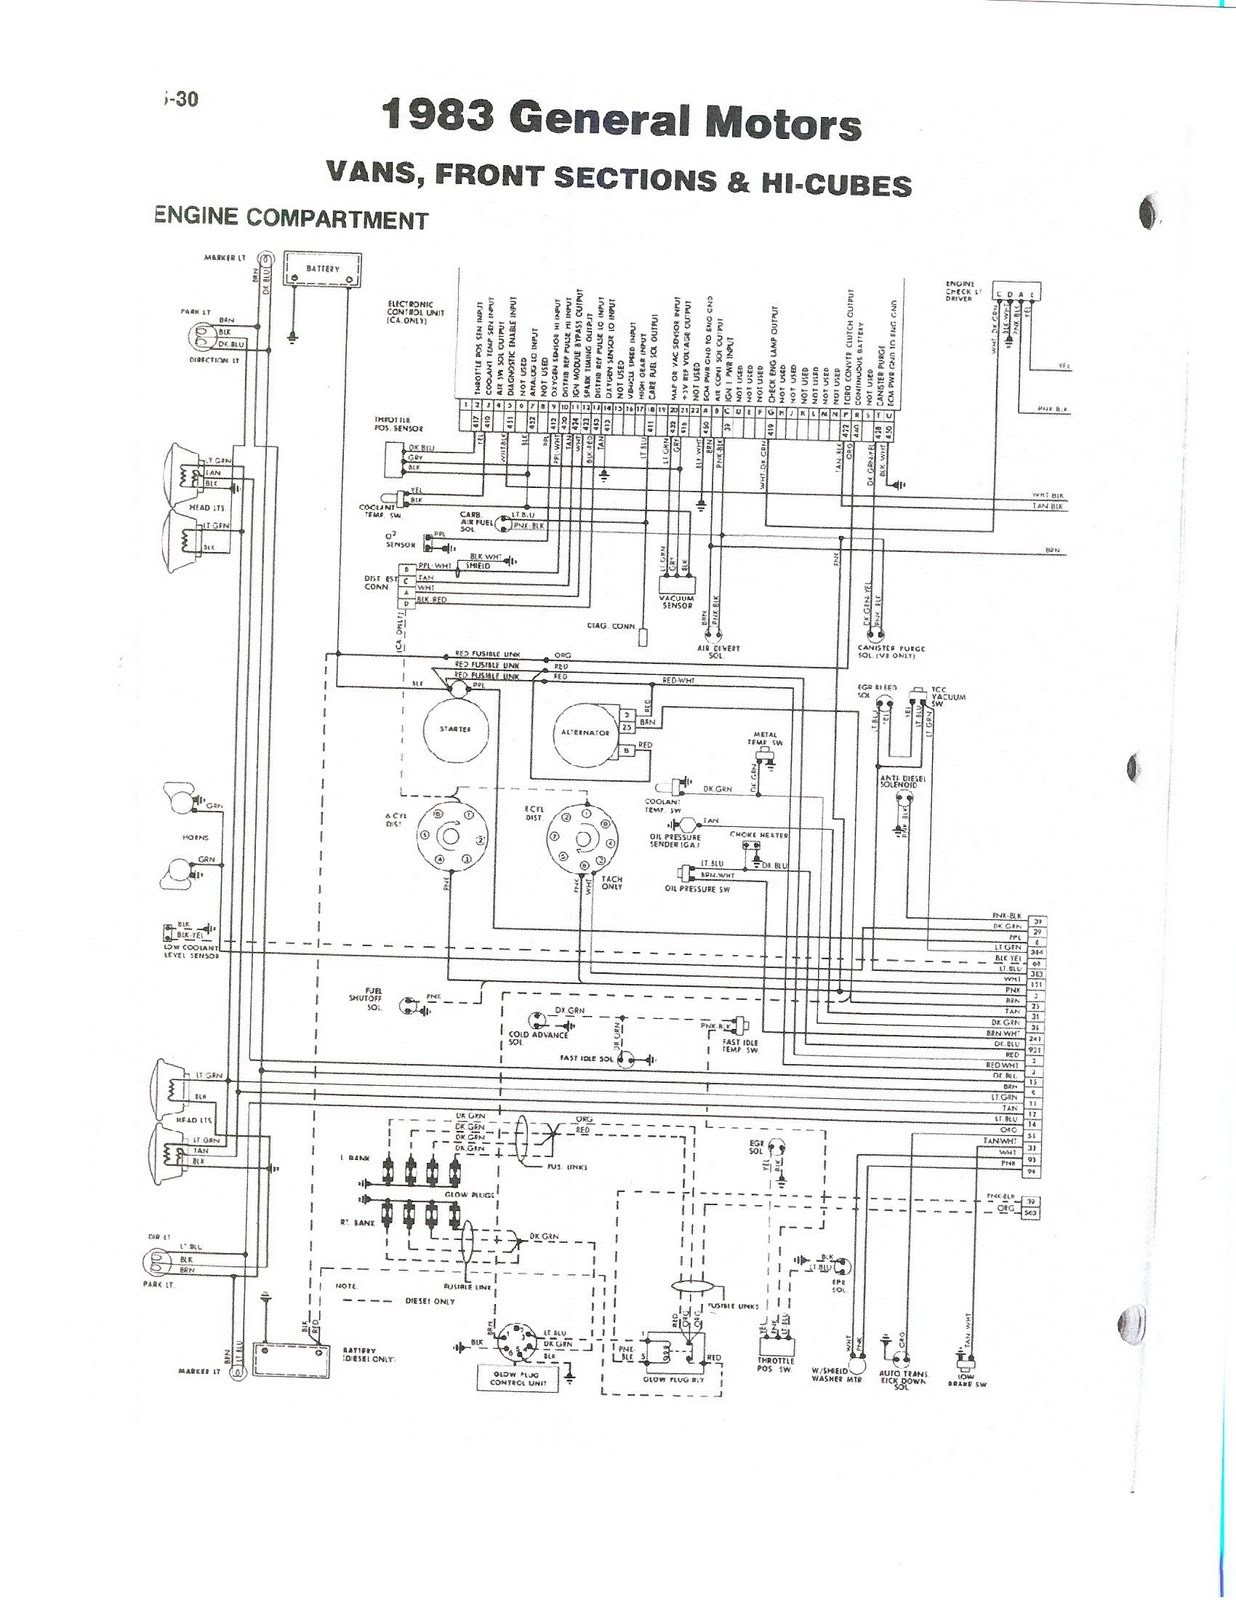 Coleman Air Handler Wiring Diagram from i1.wp.com